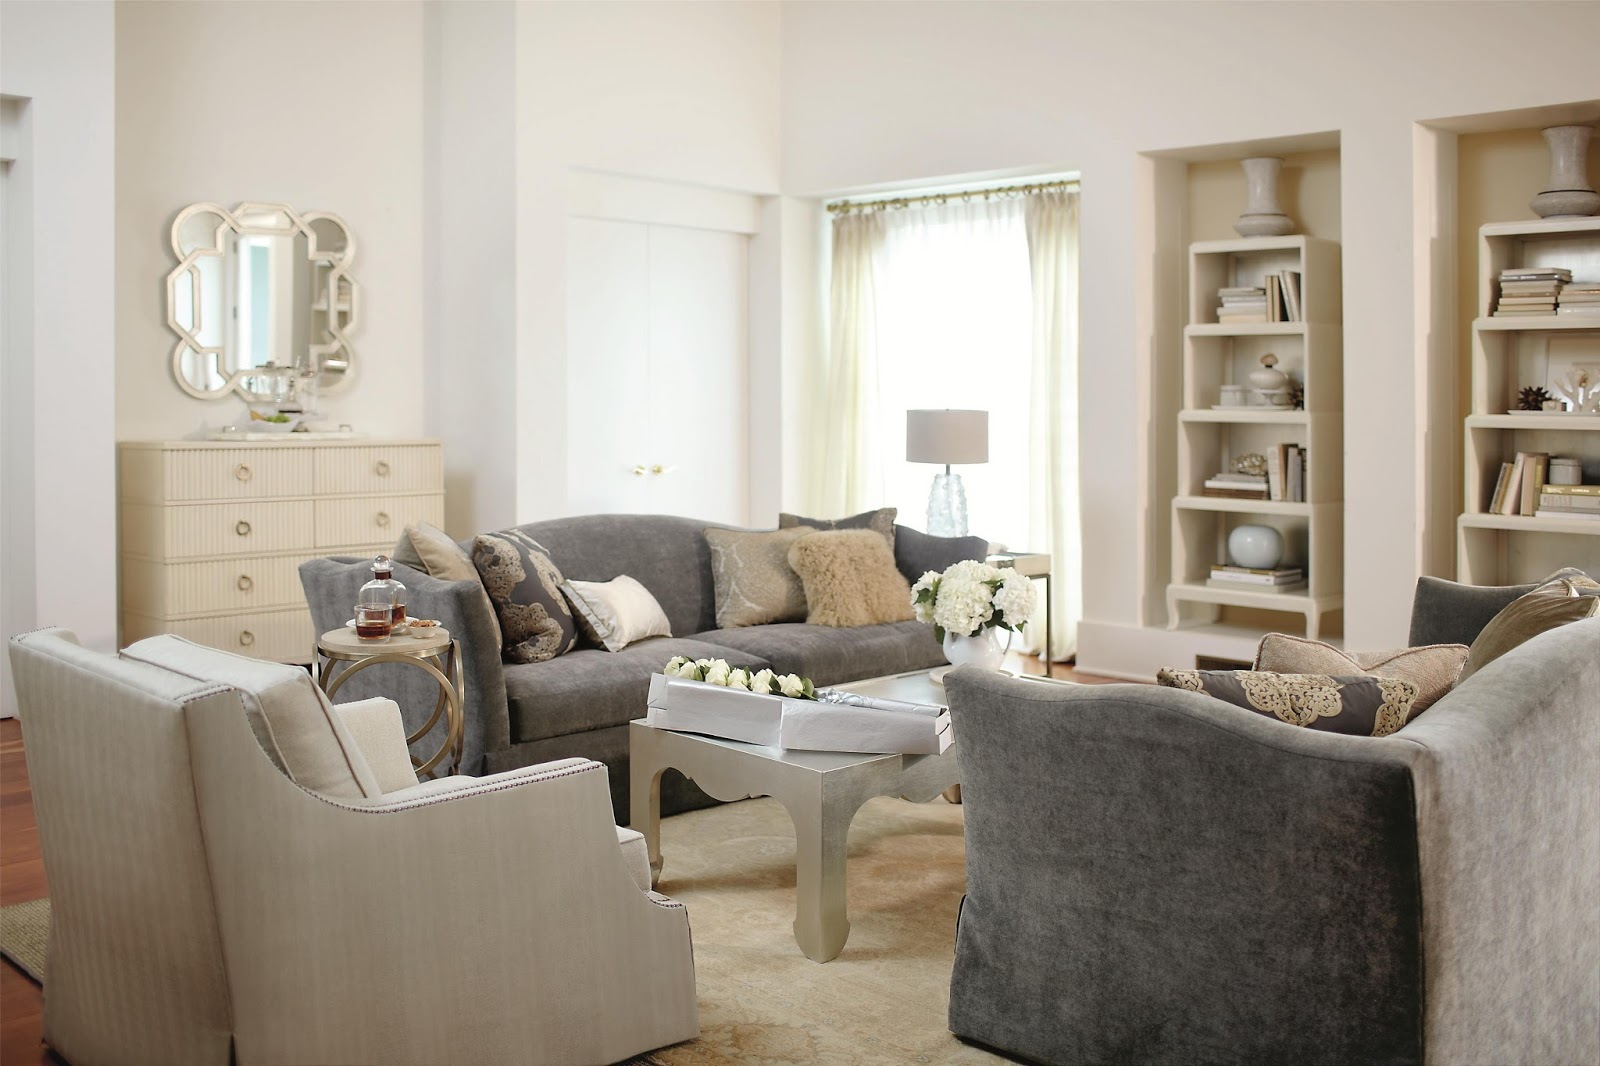 colony portfolio furniture ocean regency turnberry item interiors dkor hollywood